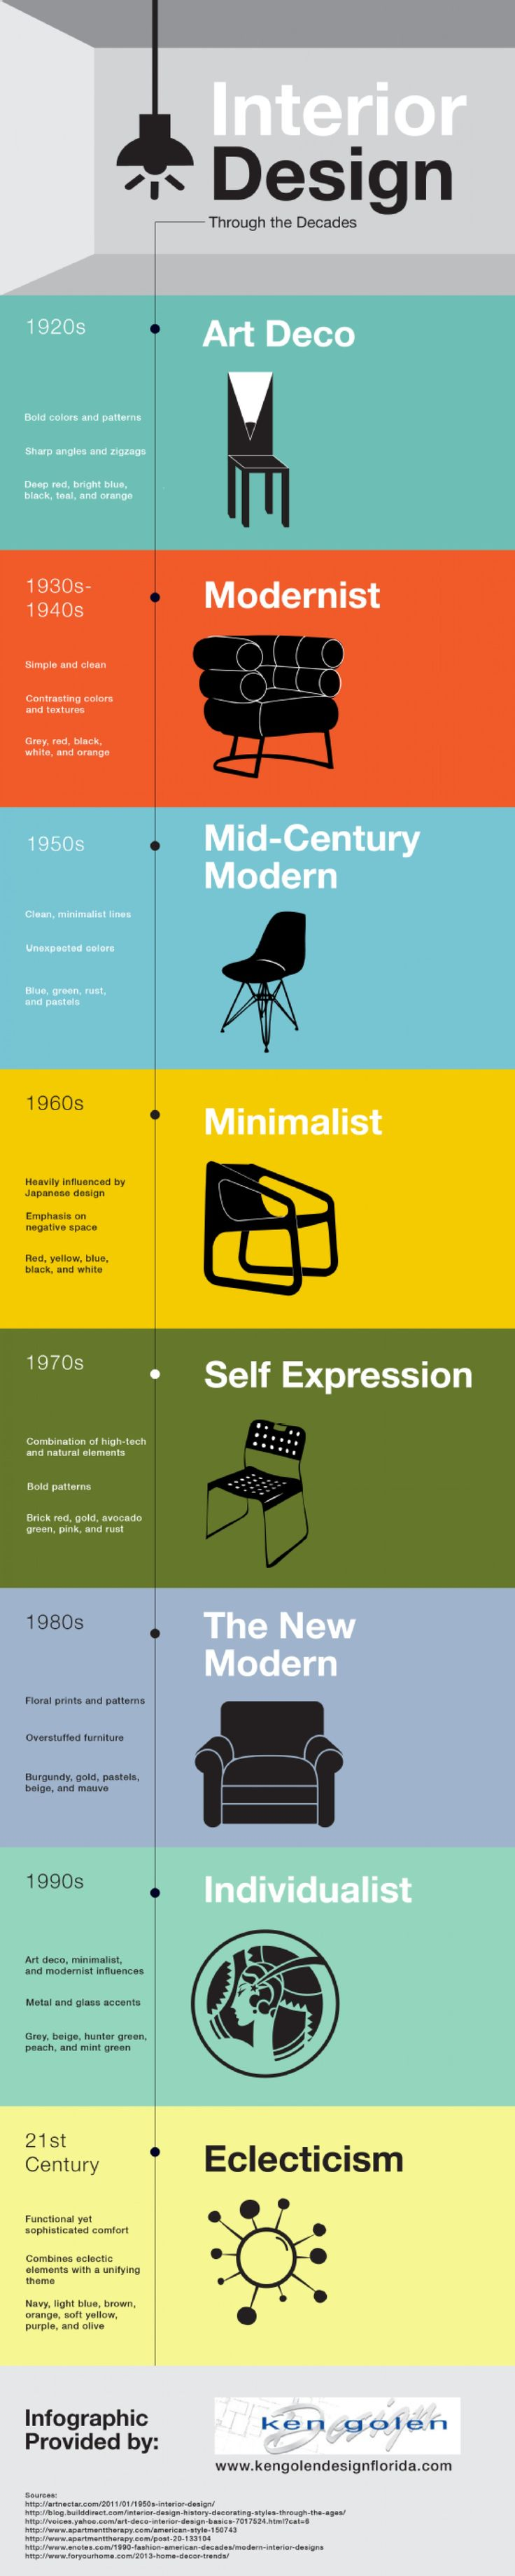 Interior Design through the Decades | Visual.ly